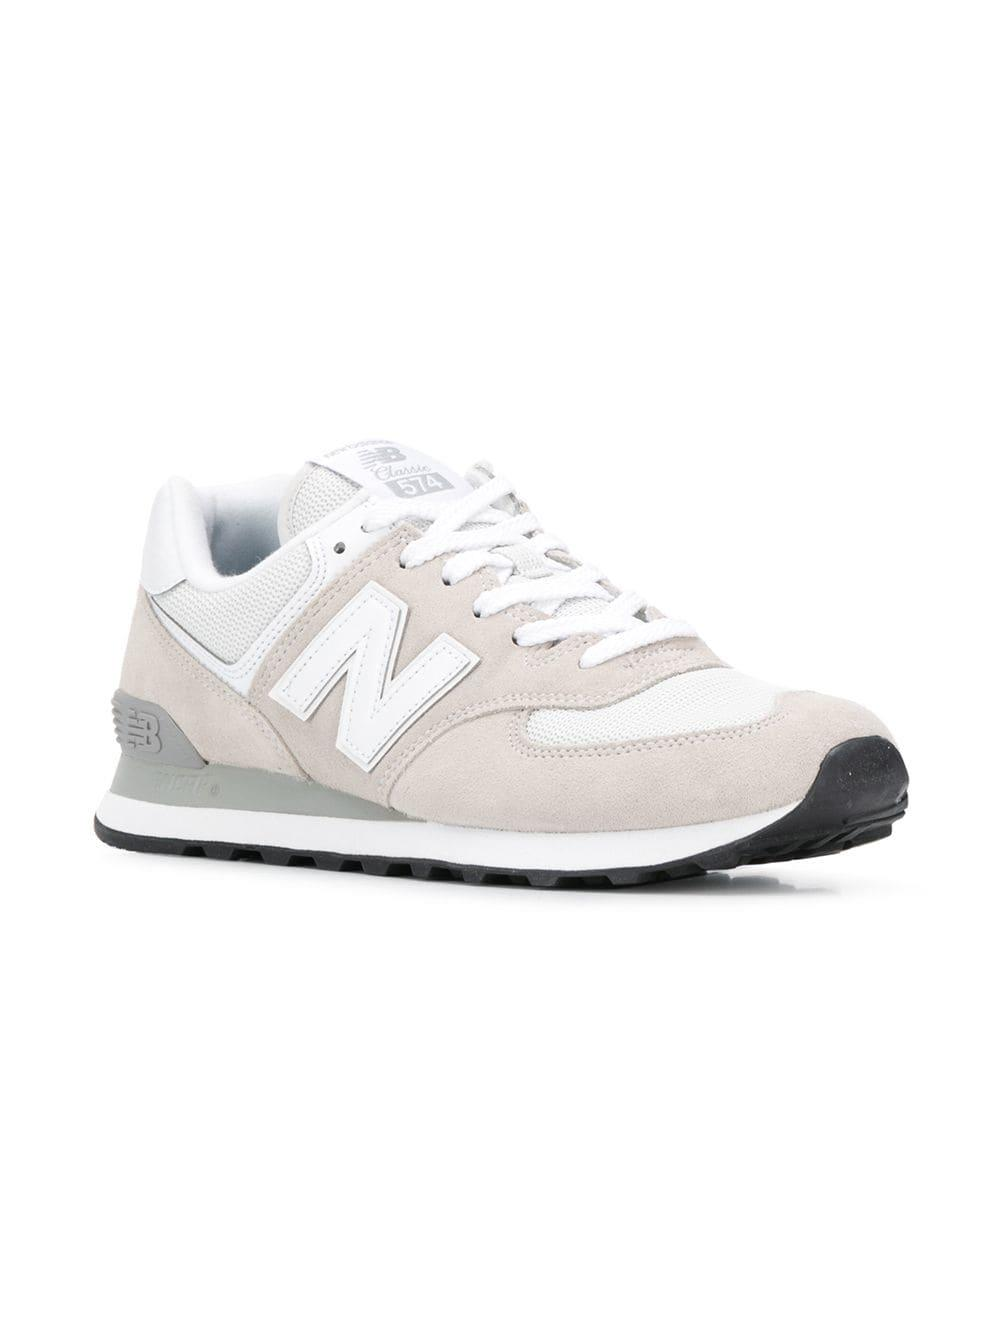 bfbfef3e10 Lyst - New Balance 574 Sneakers in White for Men